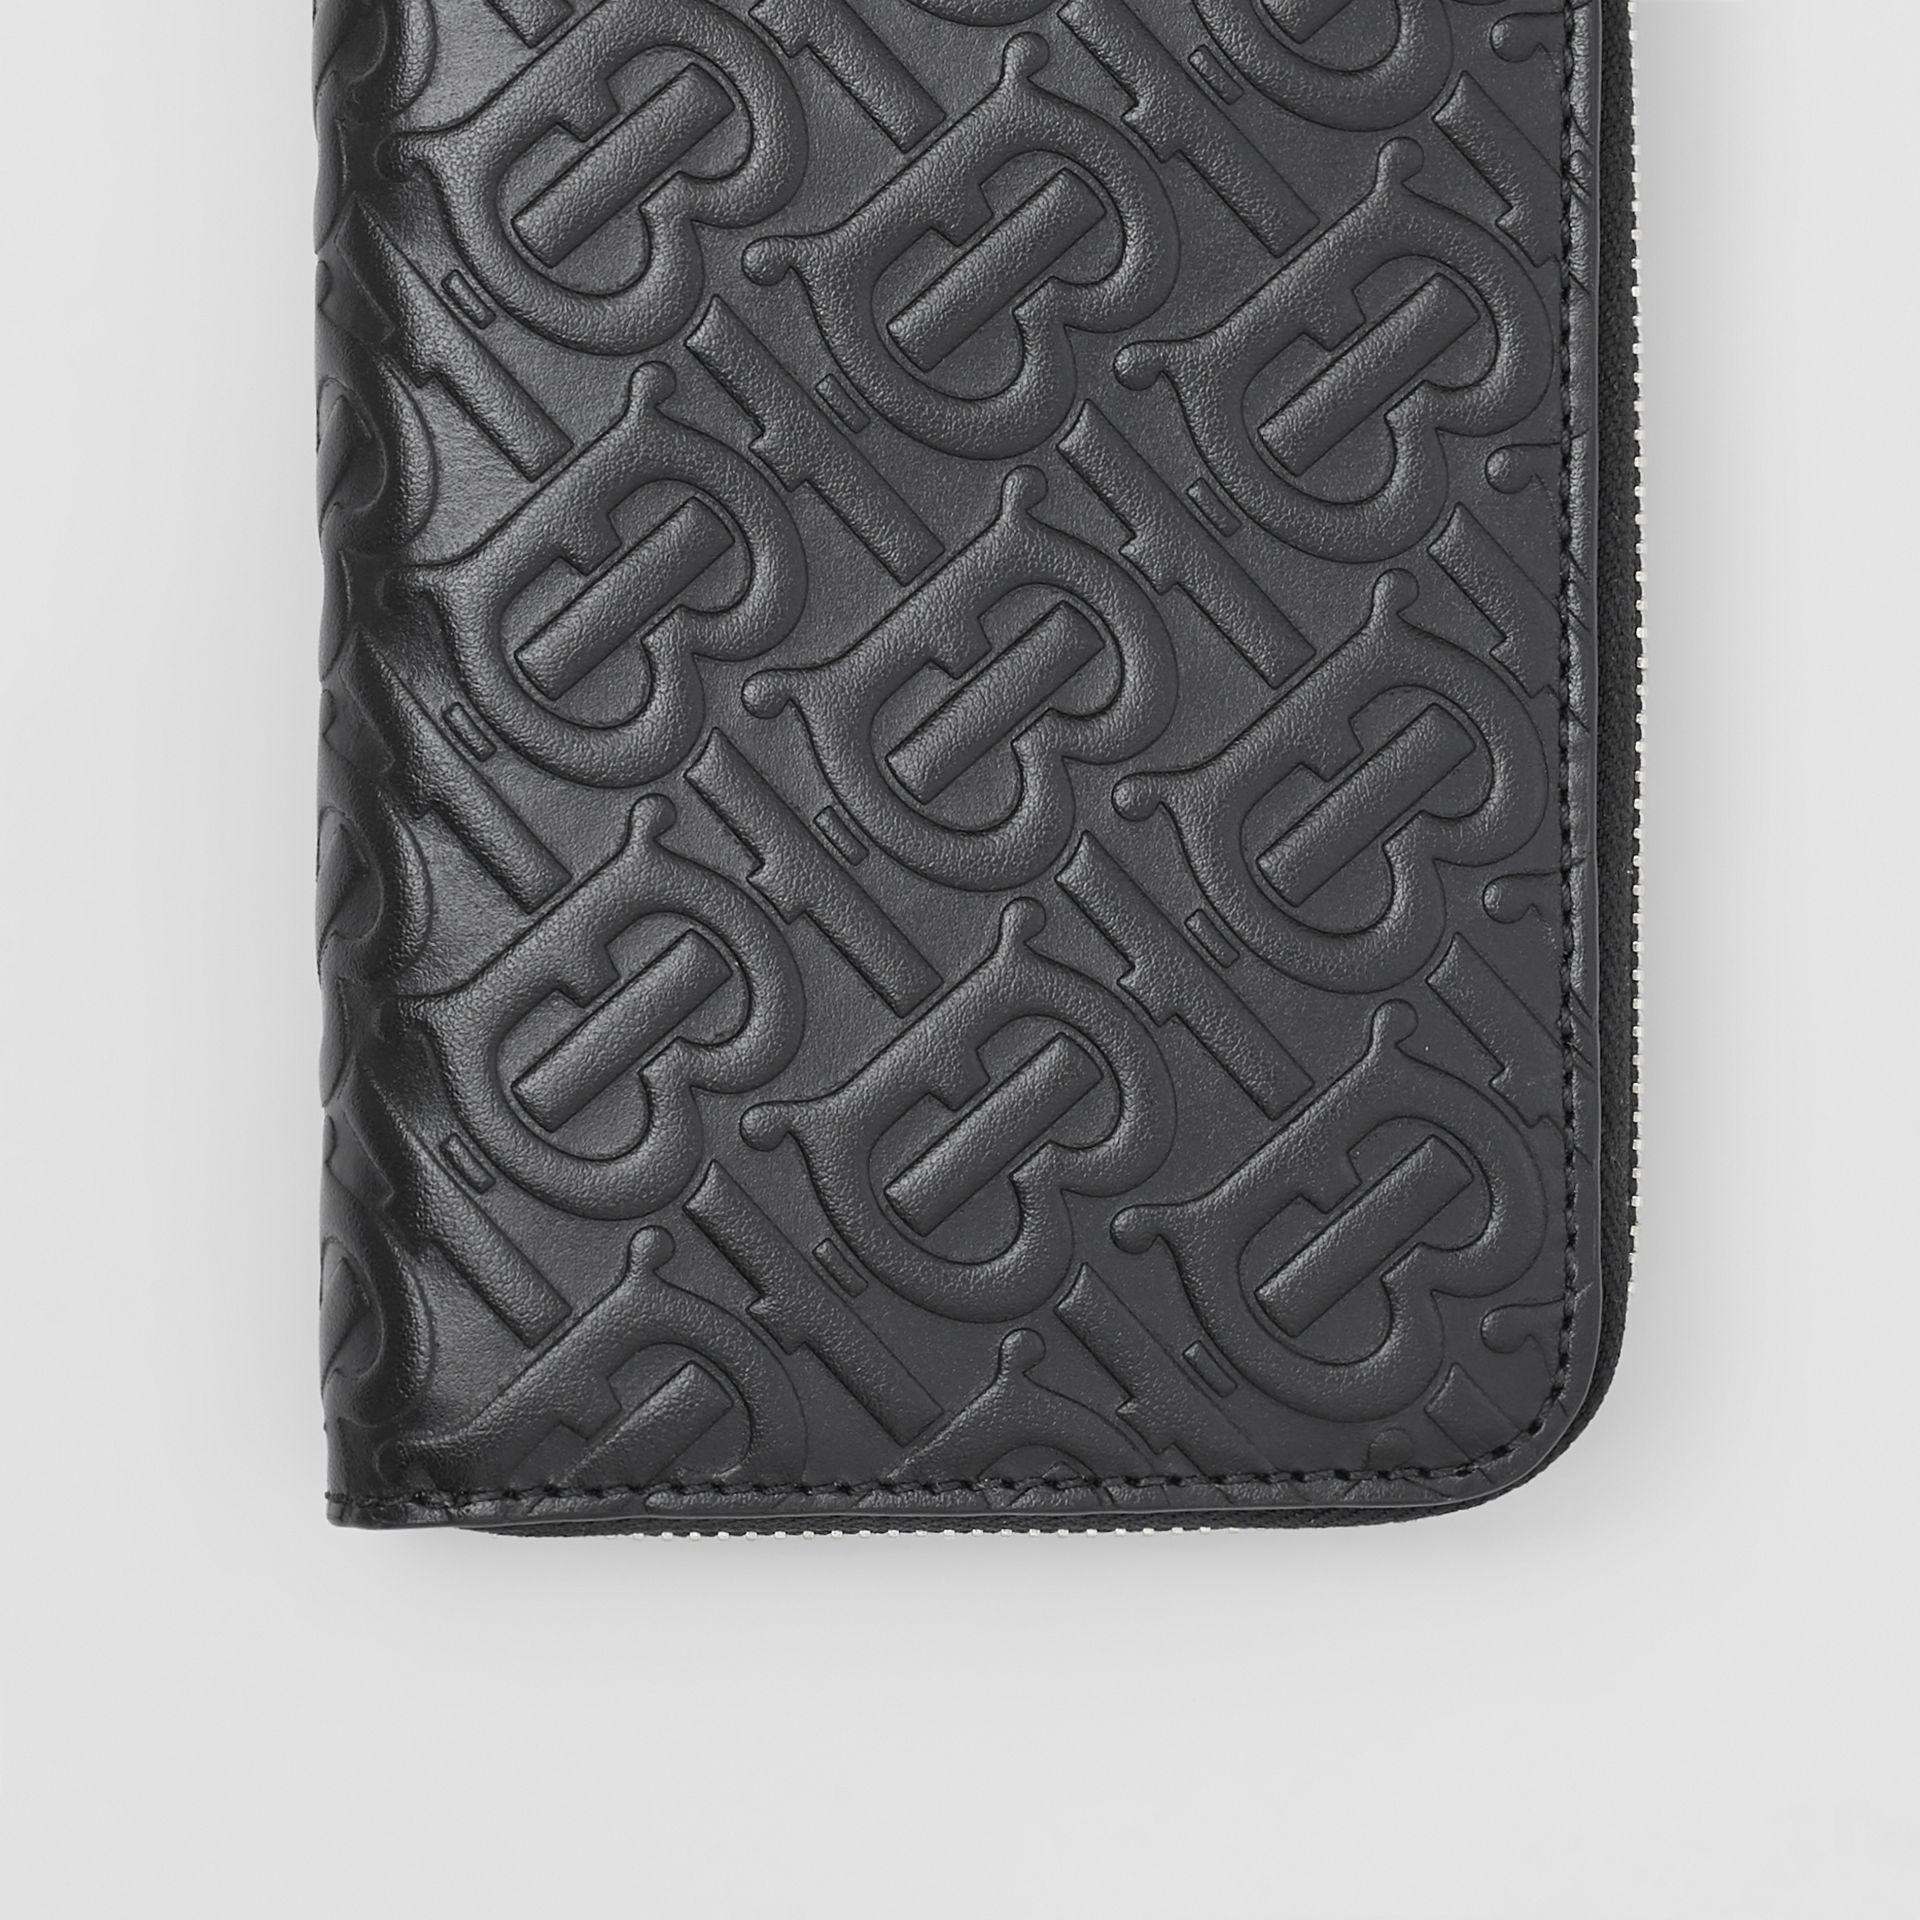 Monogram Leather Ziparound Wallet in Black - Men | Burberry - gallery image 1